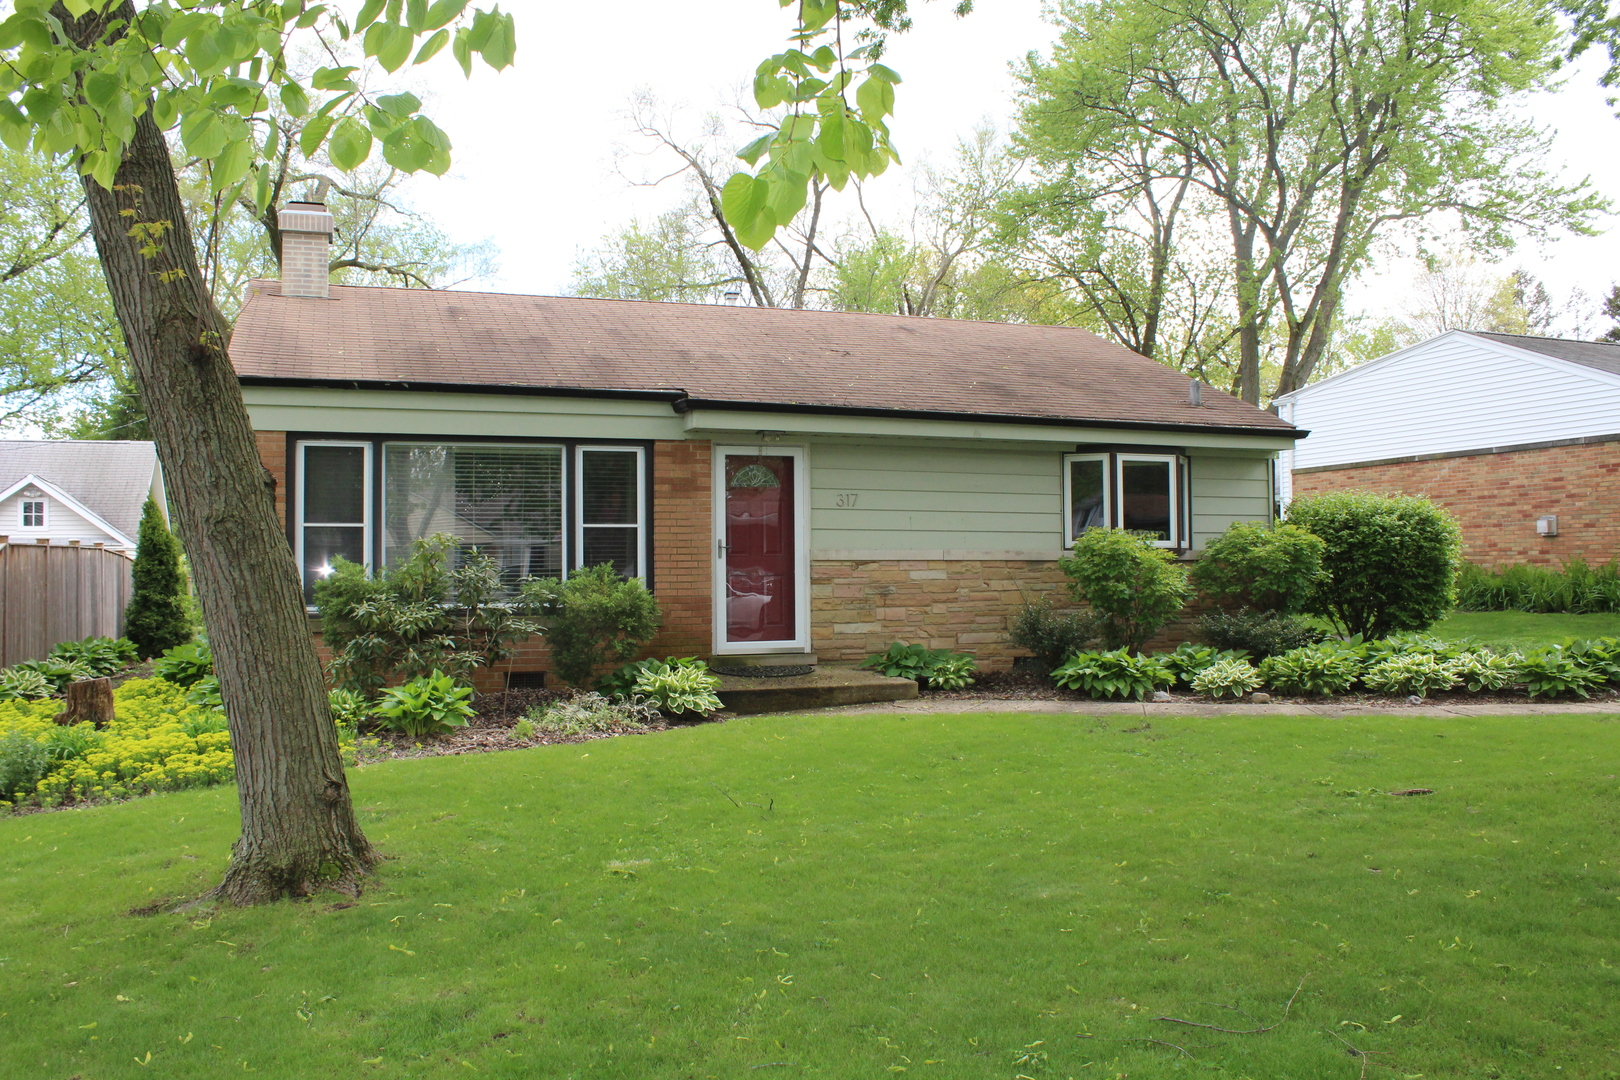 Photo of 317 Maple Street  GLEN ELLYN  IL